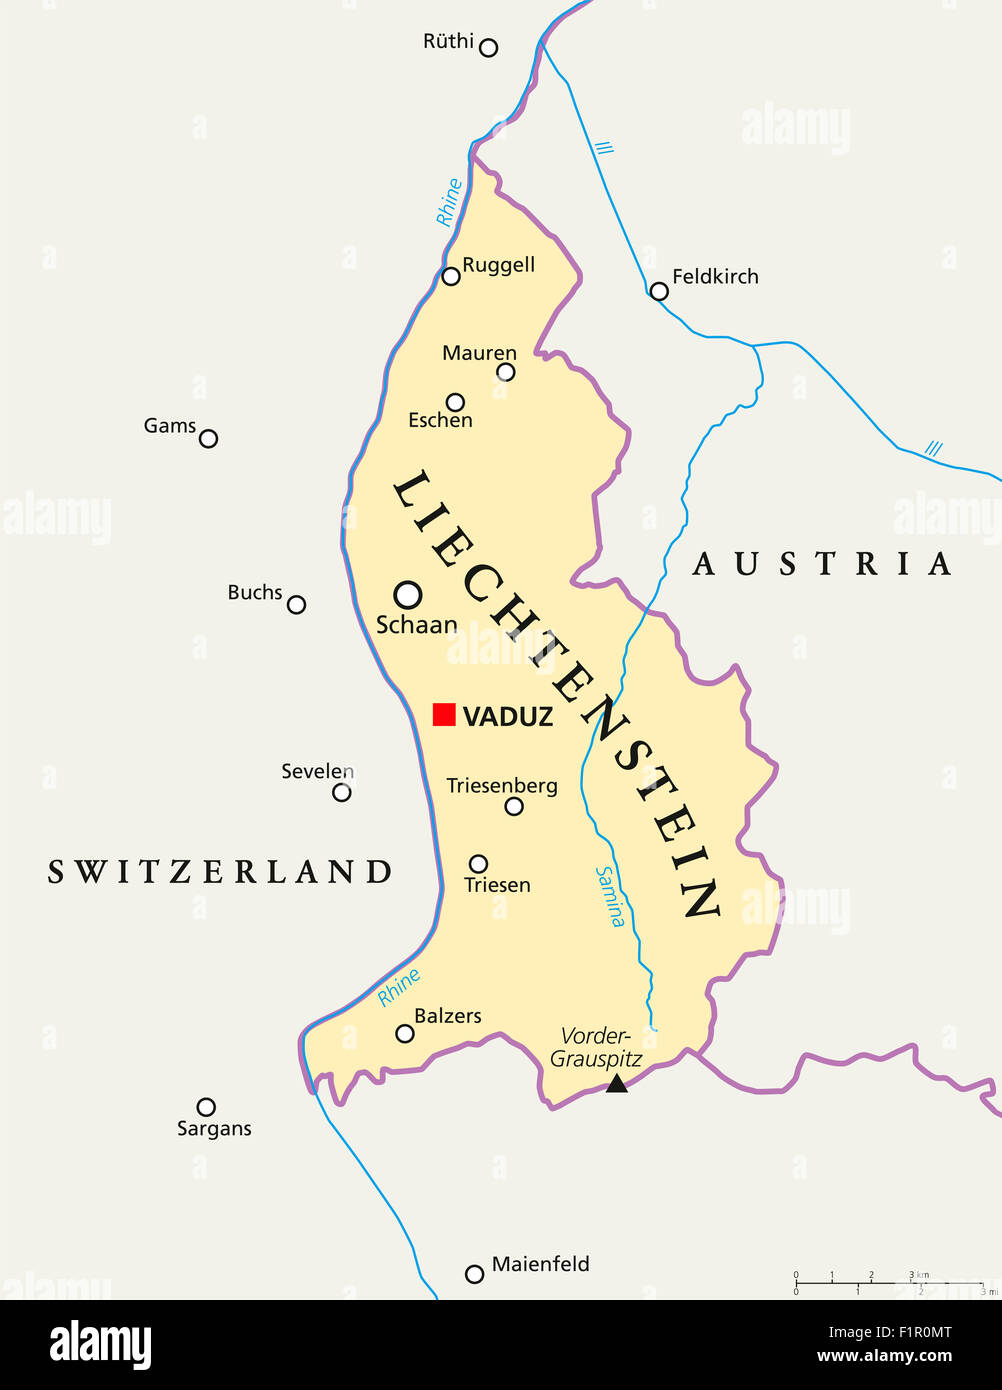 Liechtenstein Political Map With Capital Vaduz National Borders - Liechtenstein map